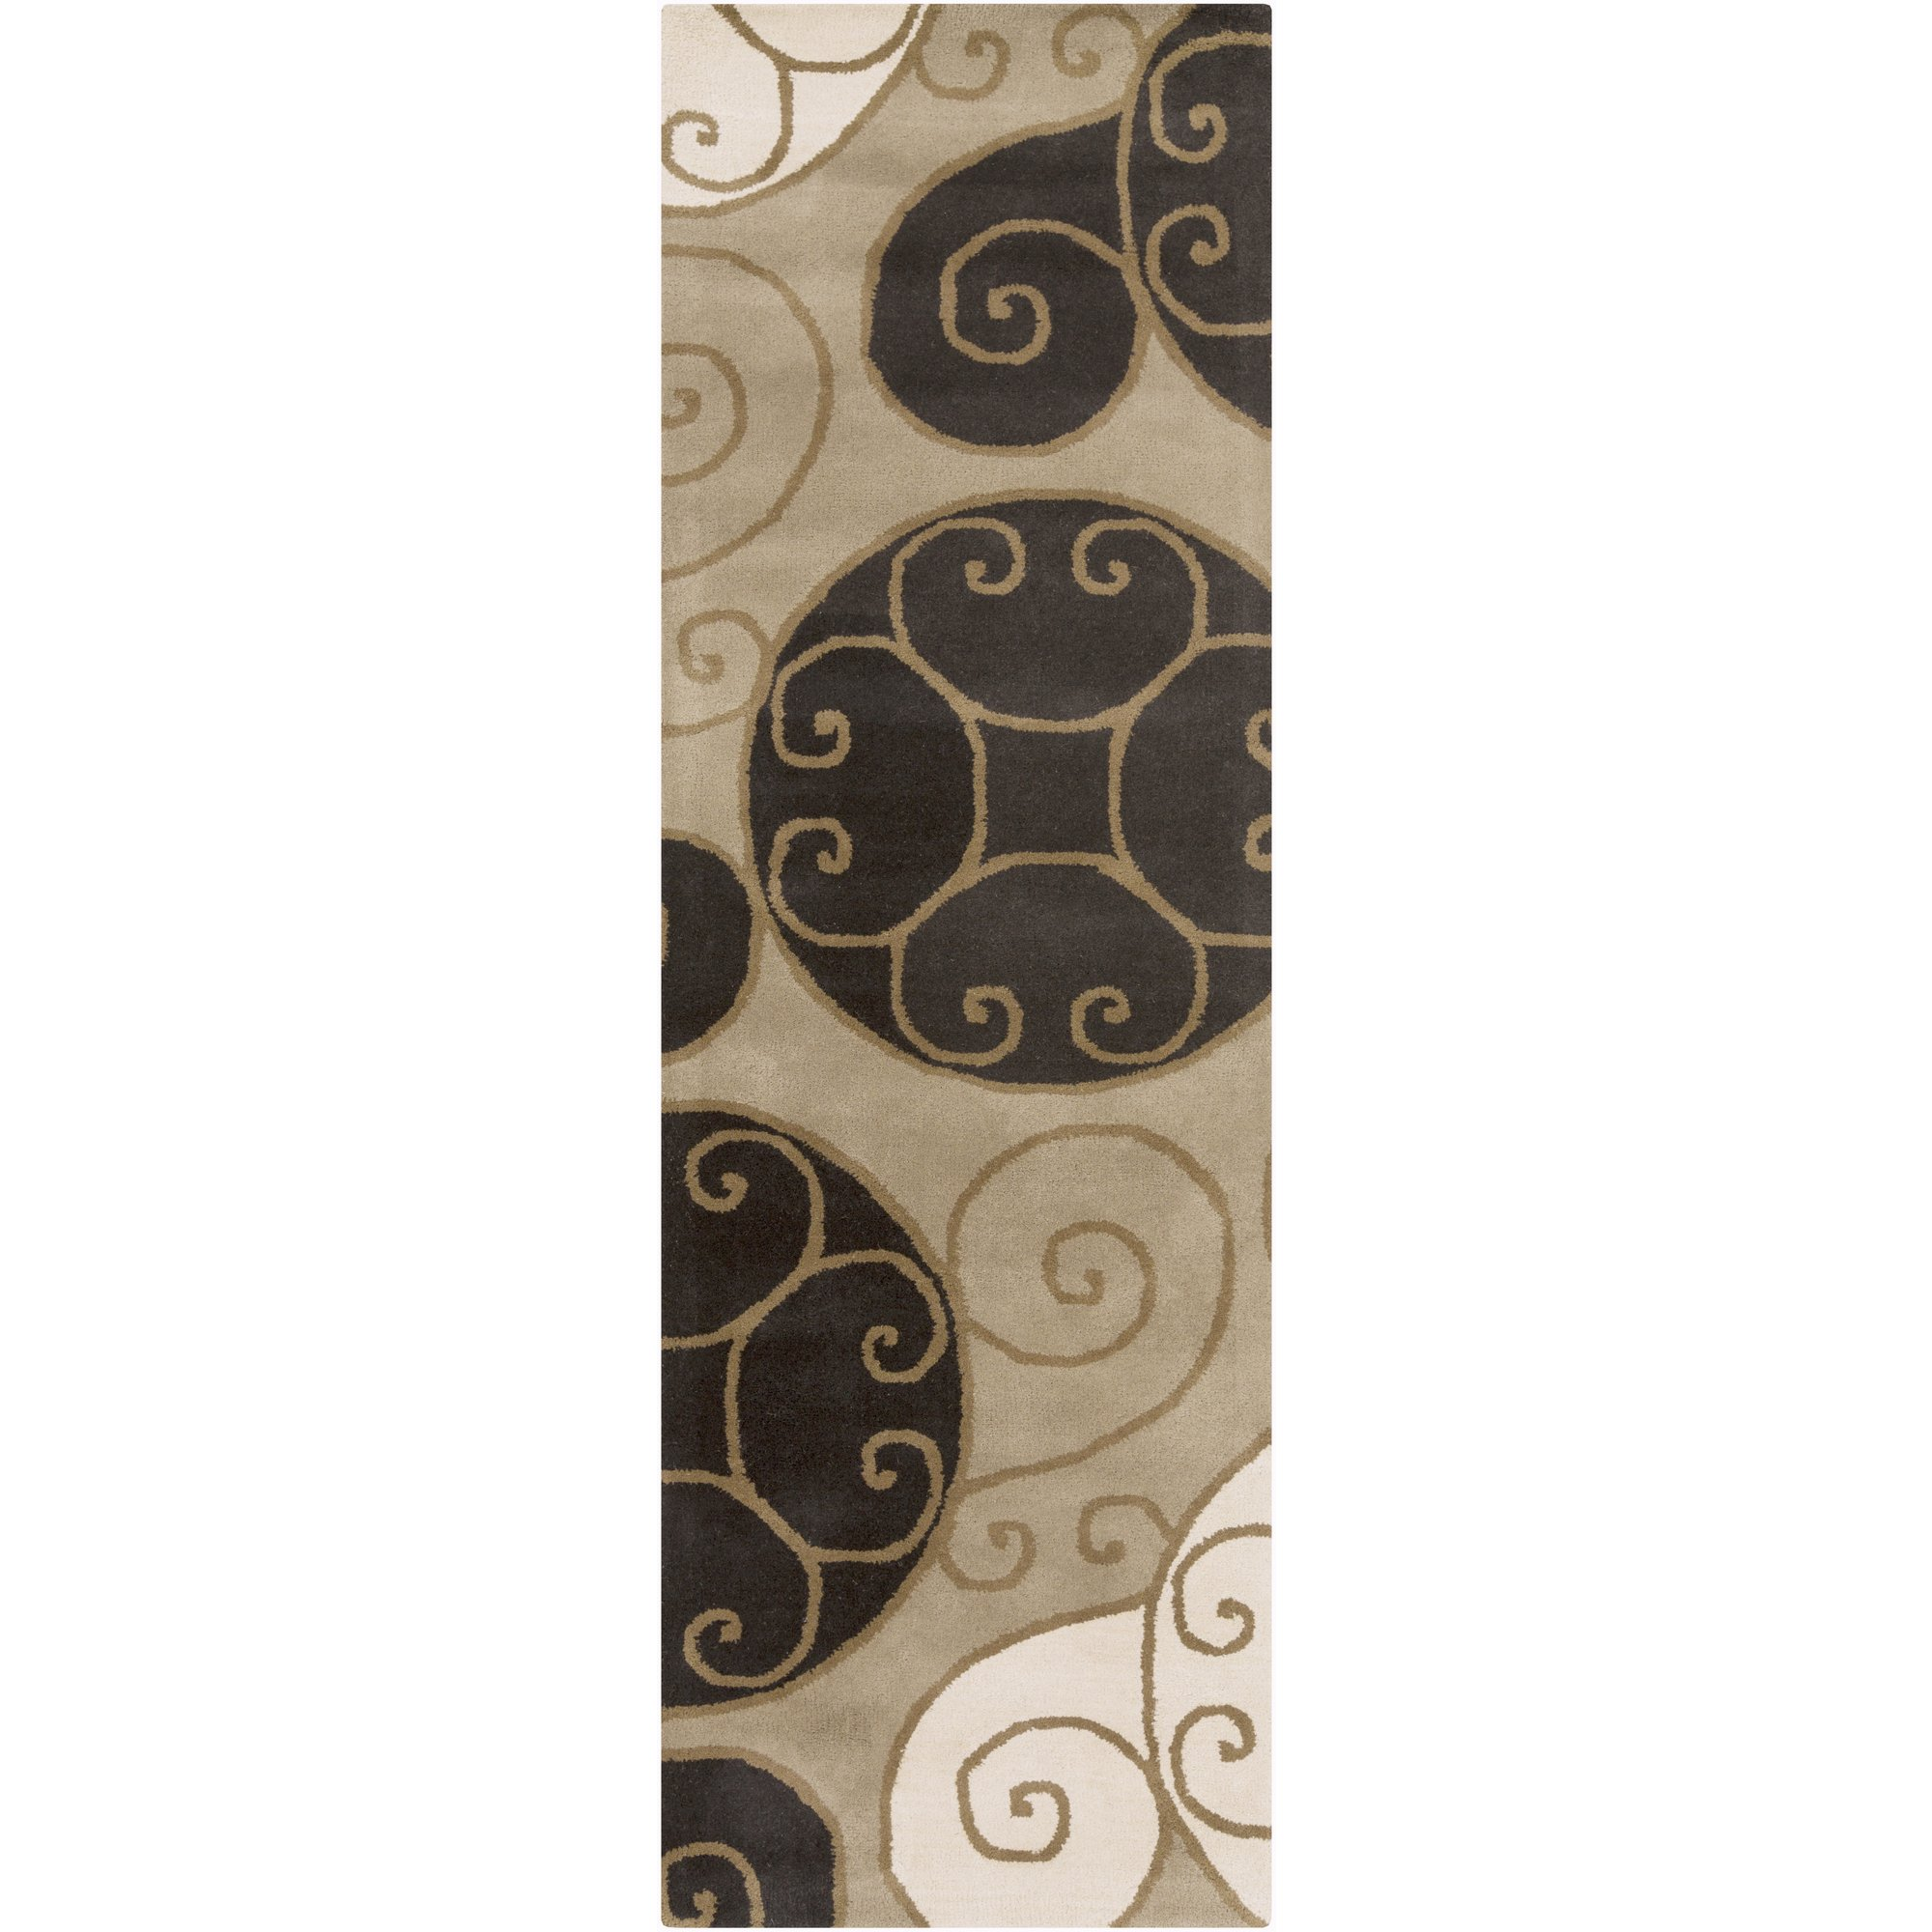 Surya Athena ATH-5111 Contemporary Hand Tufted 100% Wool Brindle 2'6'' x 8' Geometric Runner